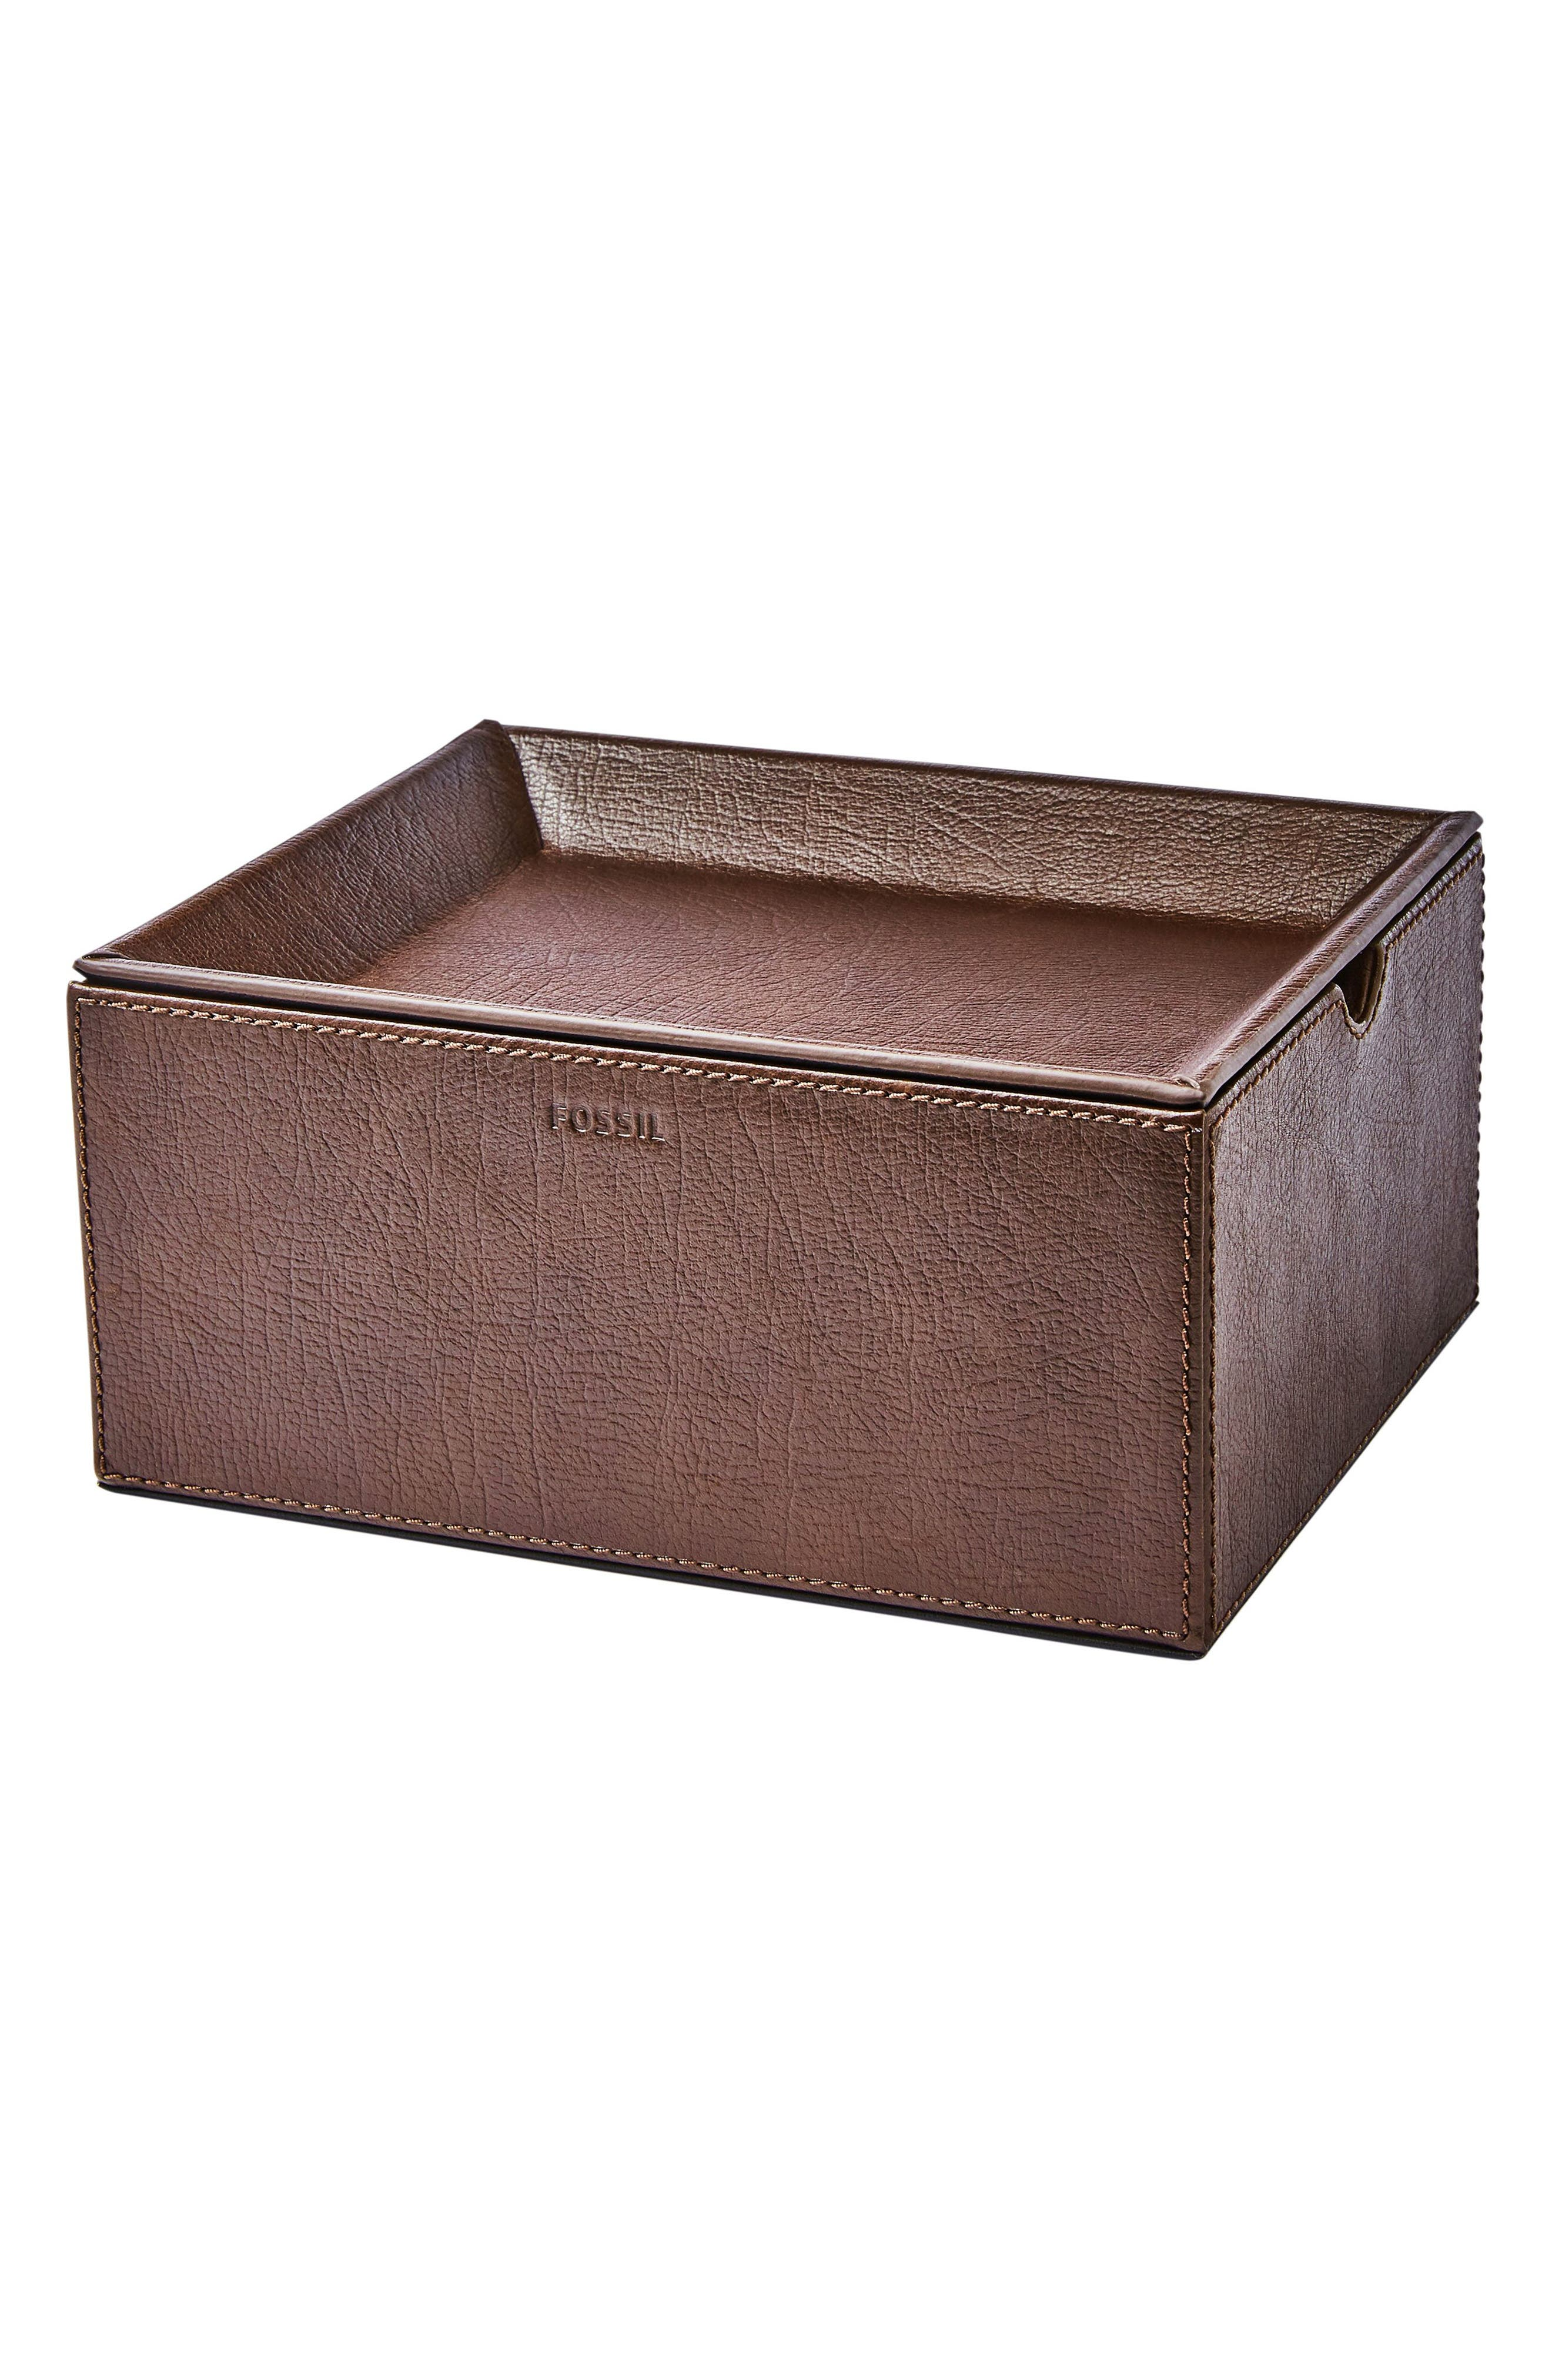 Fossil 5-Piece Leather Watch Box & Valet Tray